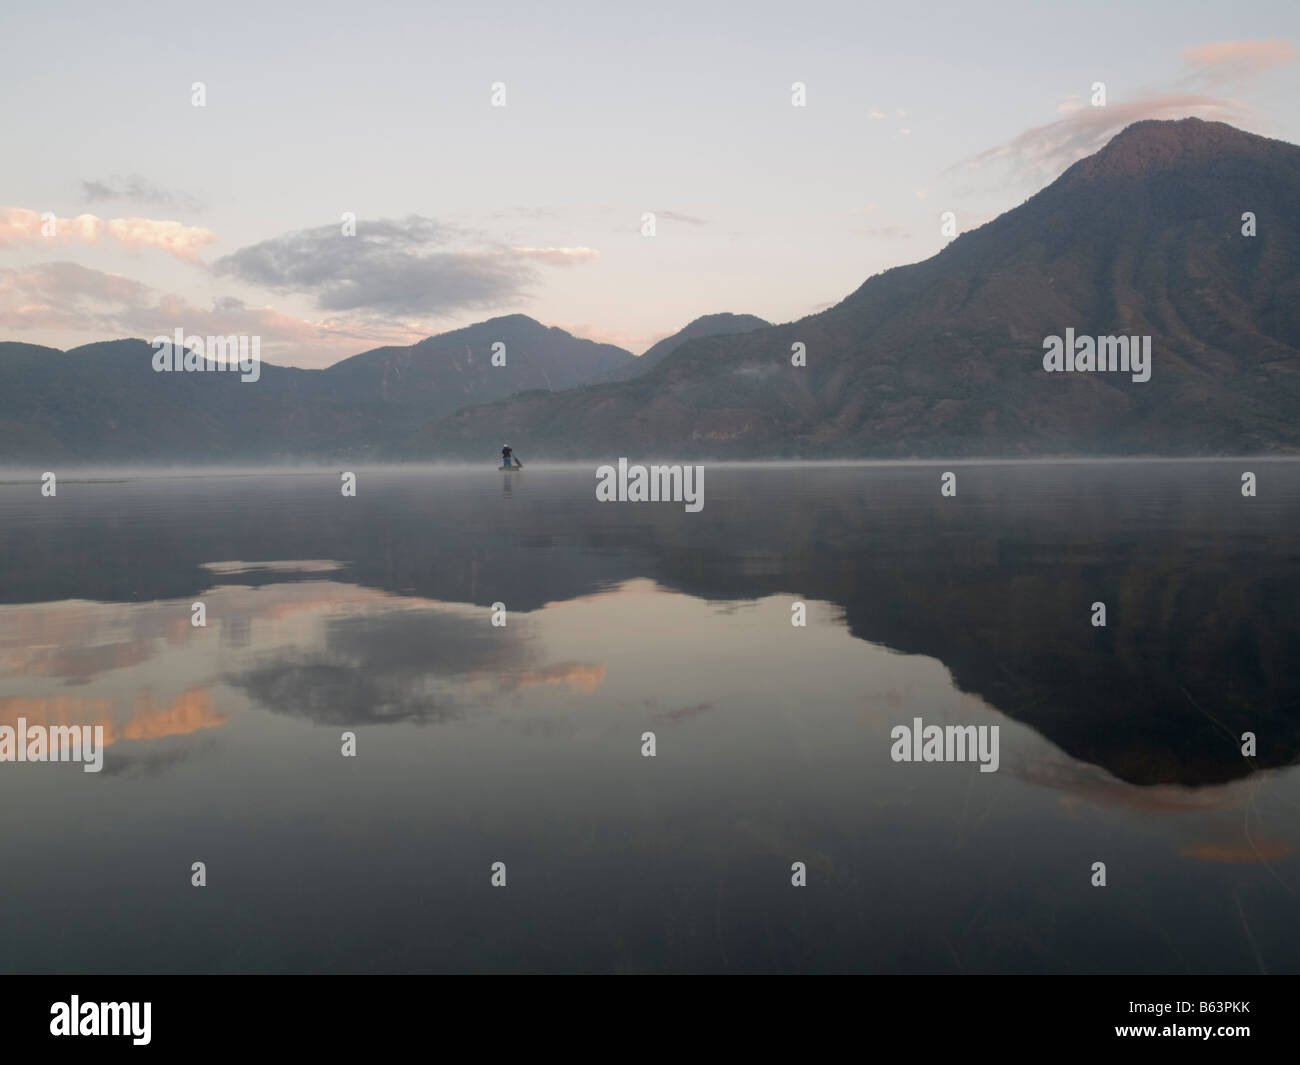 A fishermen and reflection on the surface of lake - Stock Image